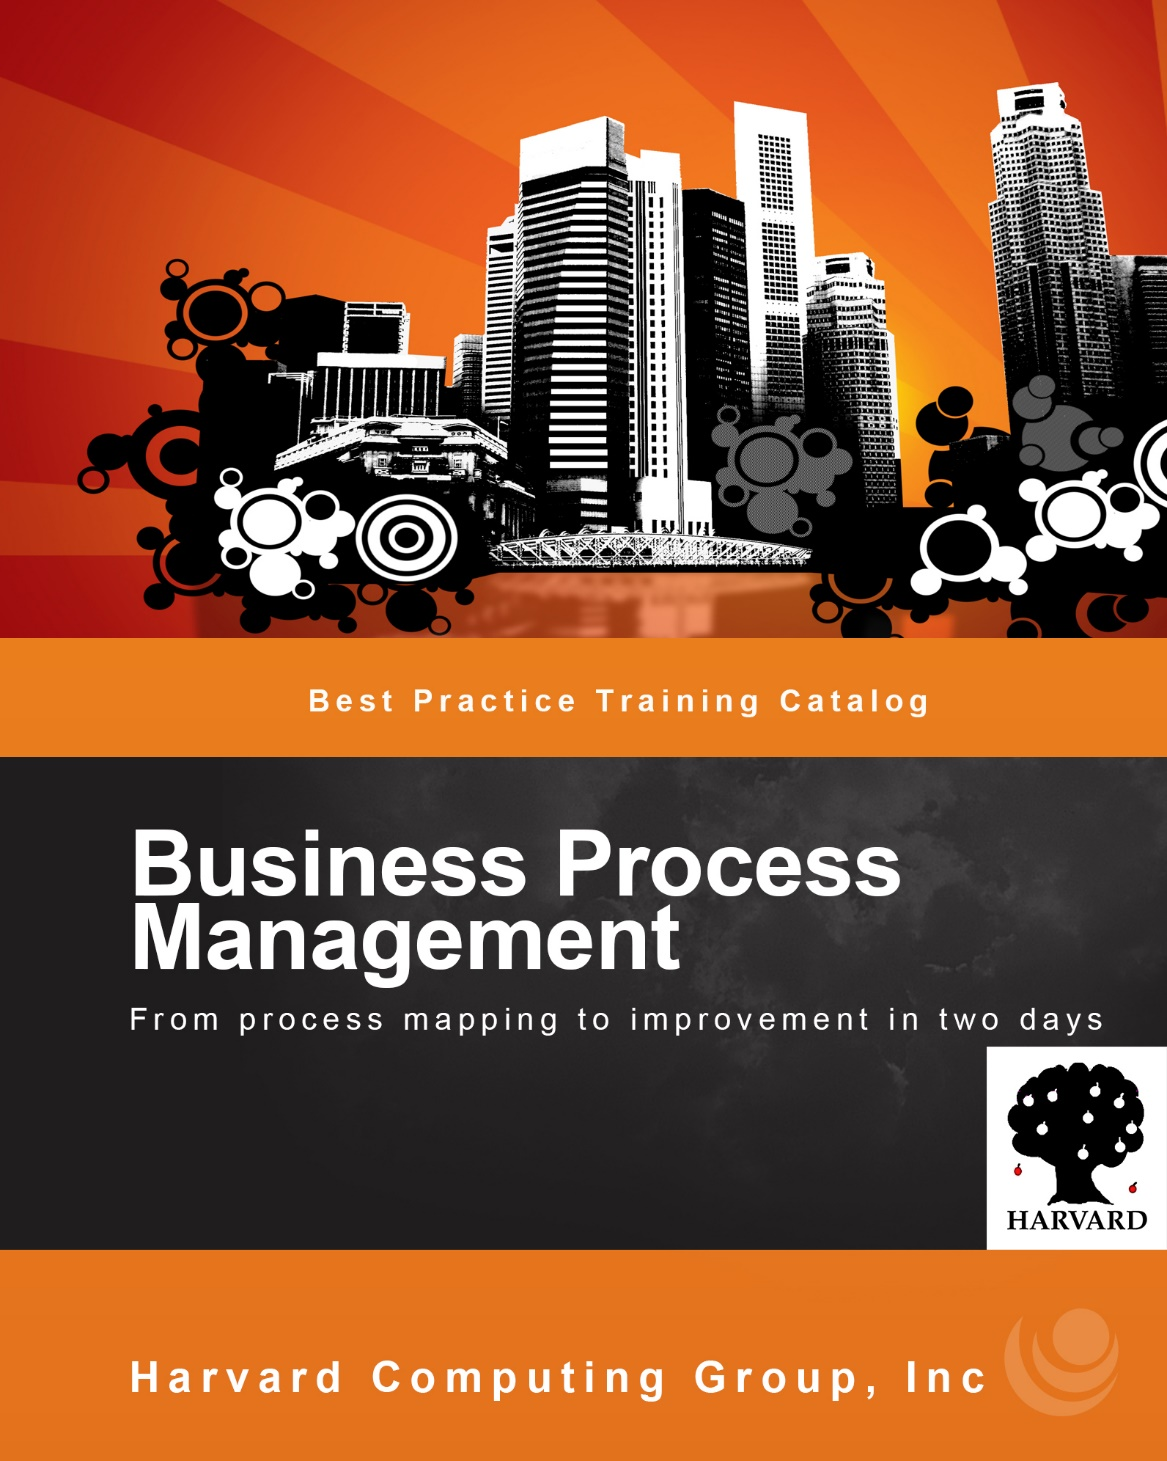 Business Process Management Course Catalog